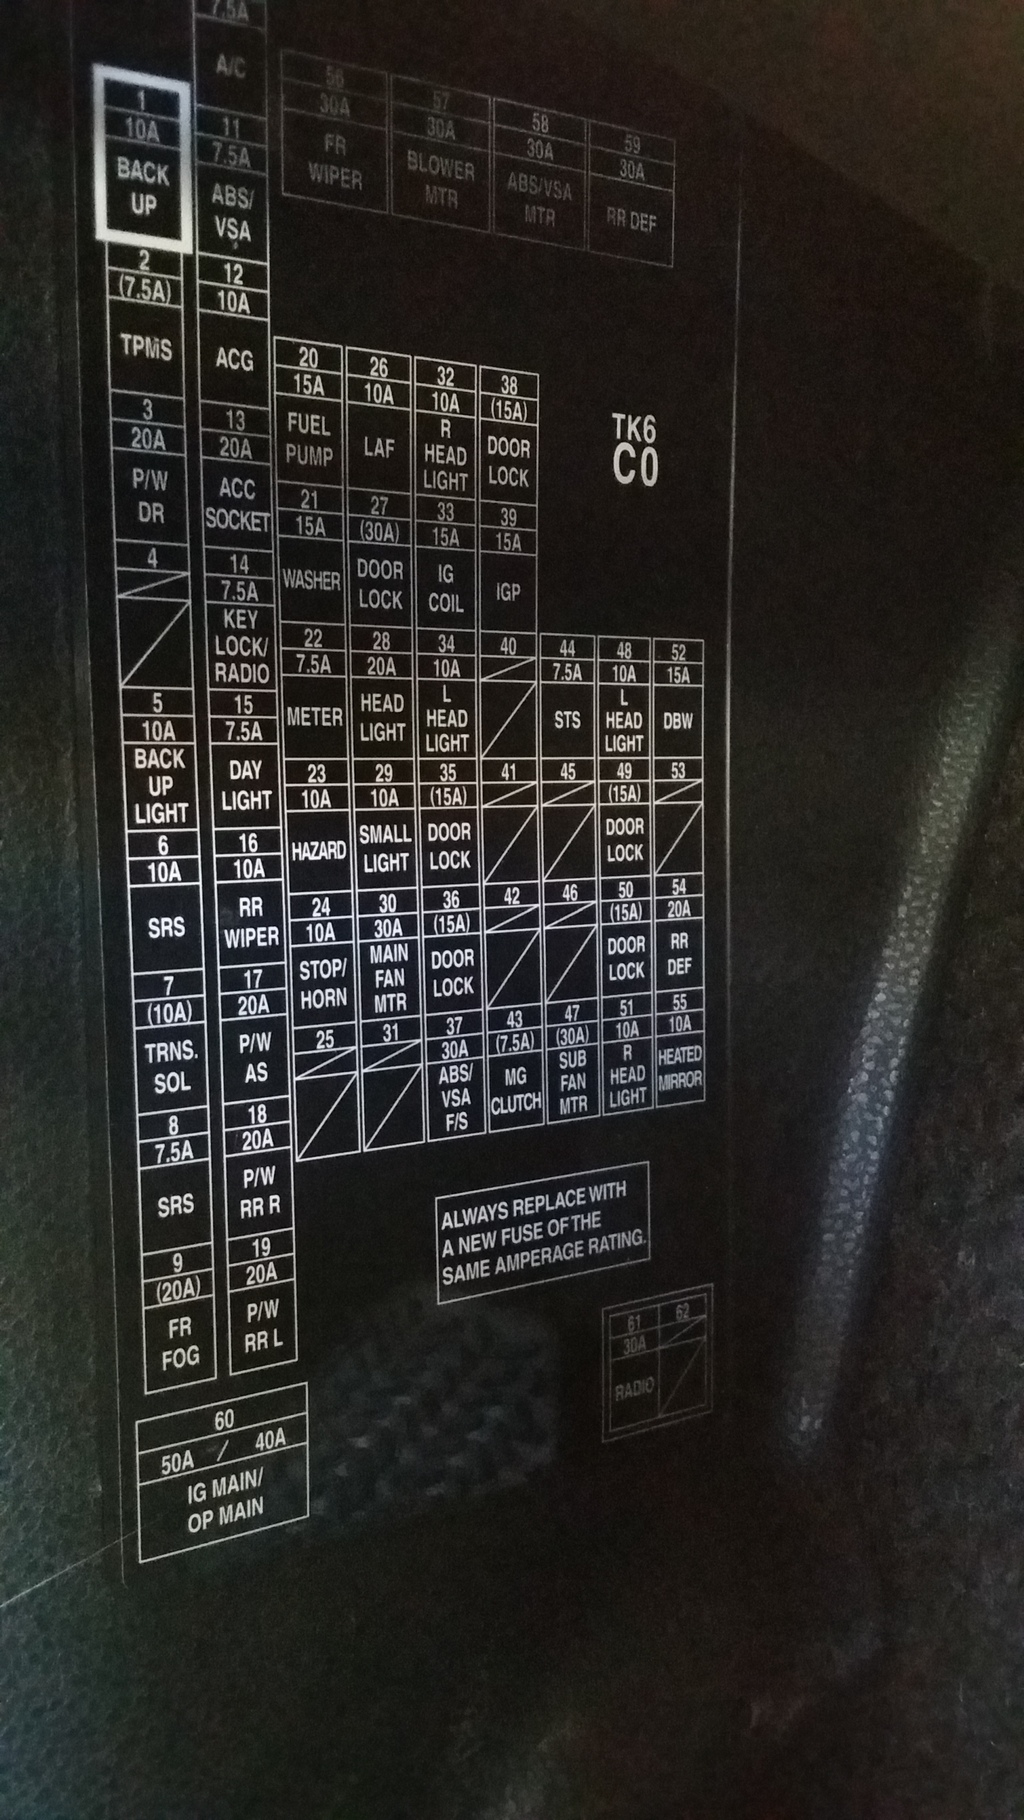 2015 Civic Wiring Diagram 2014 Fit Map Dome Rear Light Fuse Location Unofficial